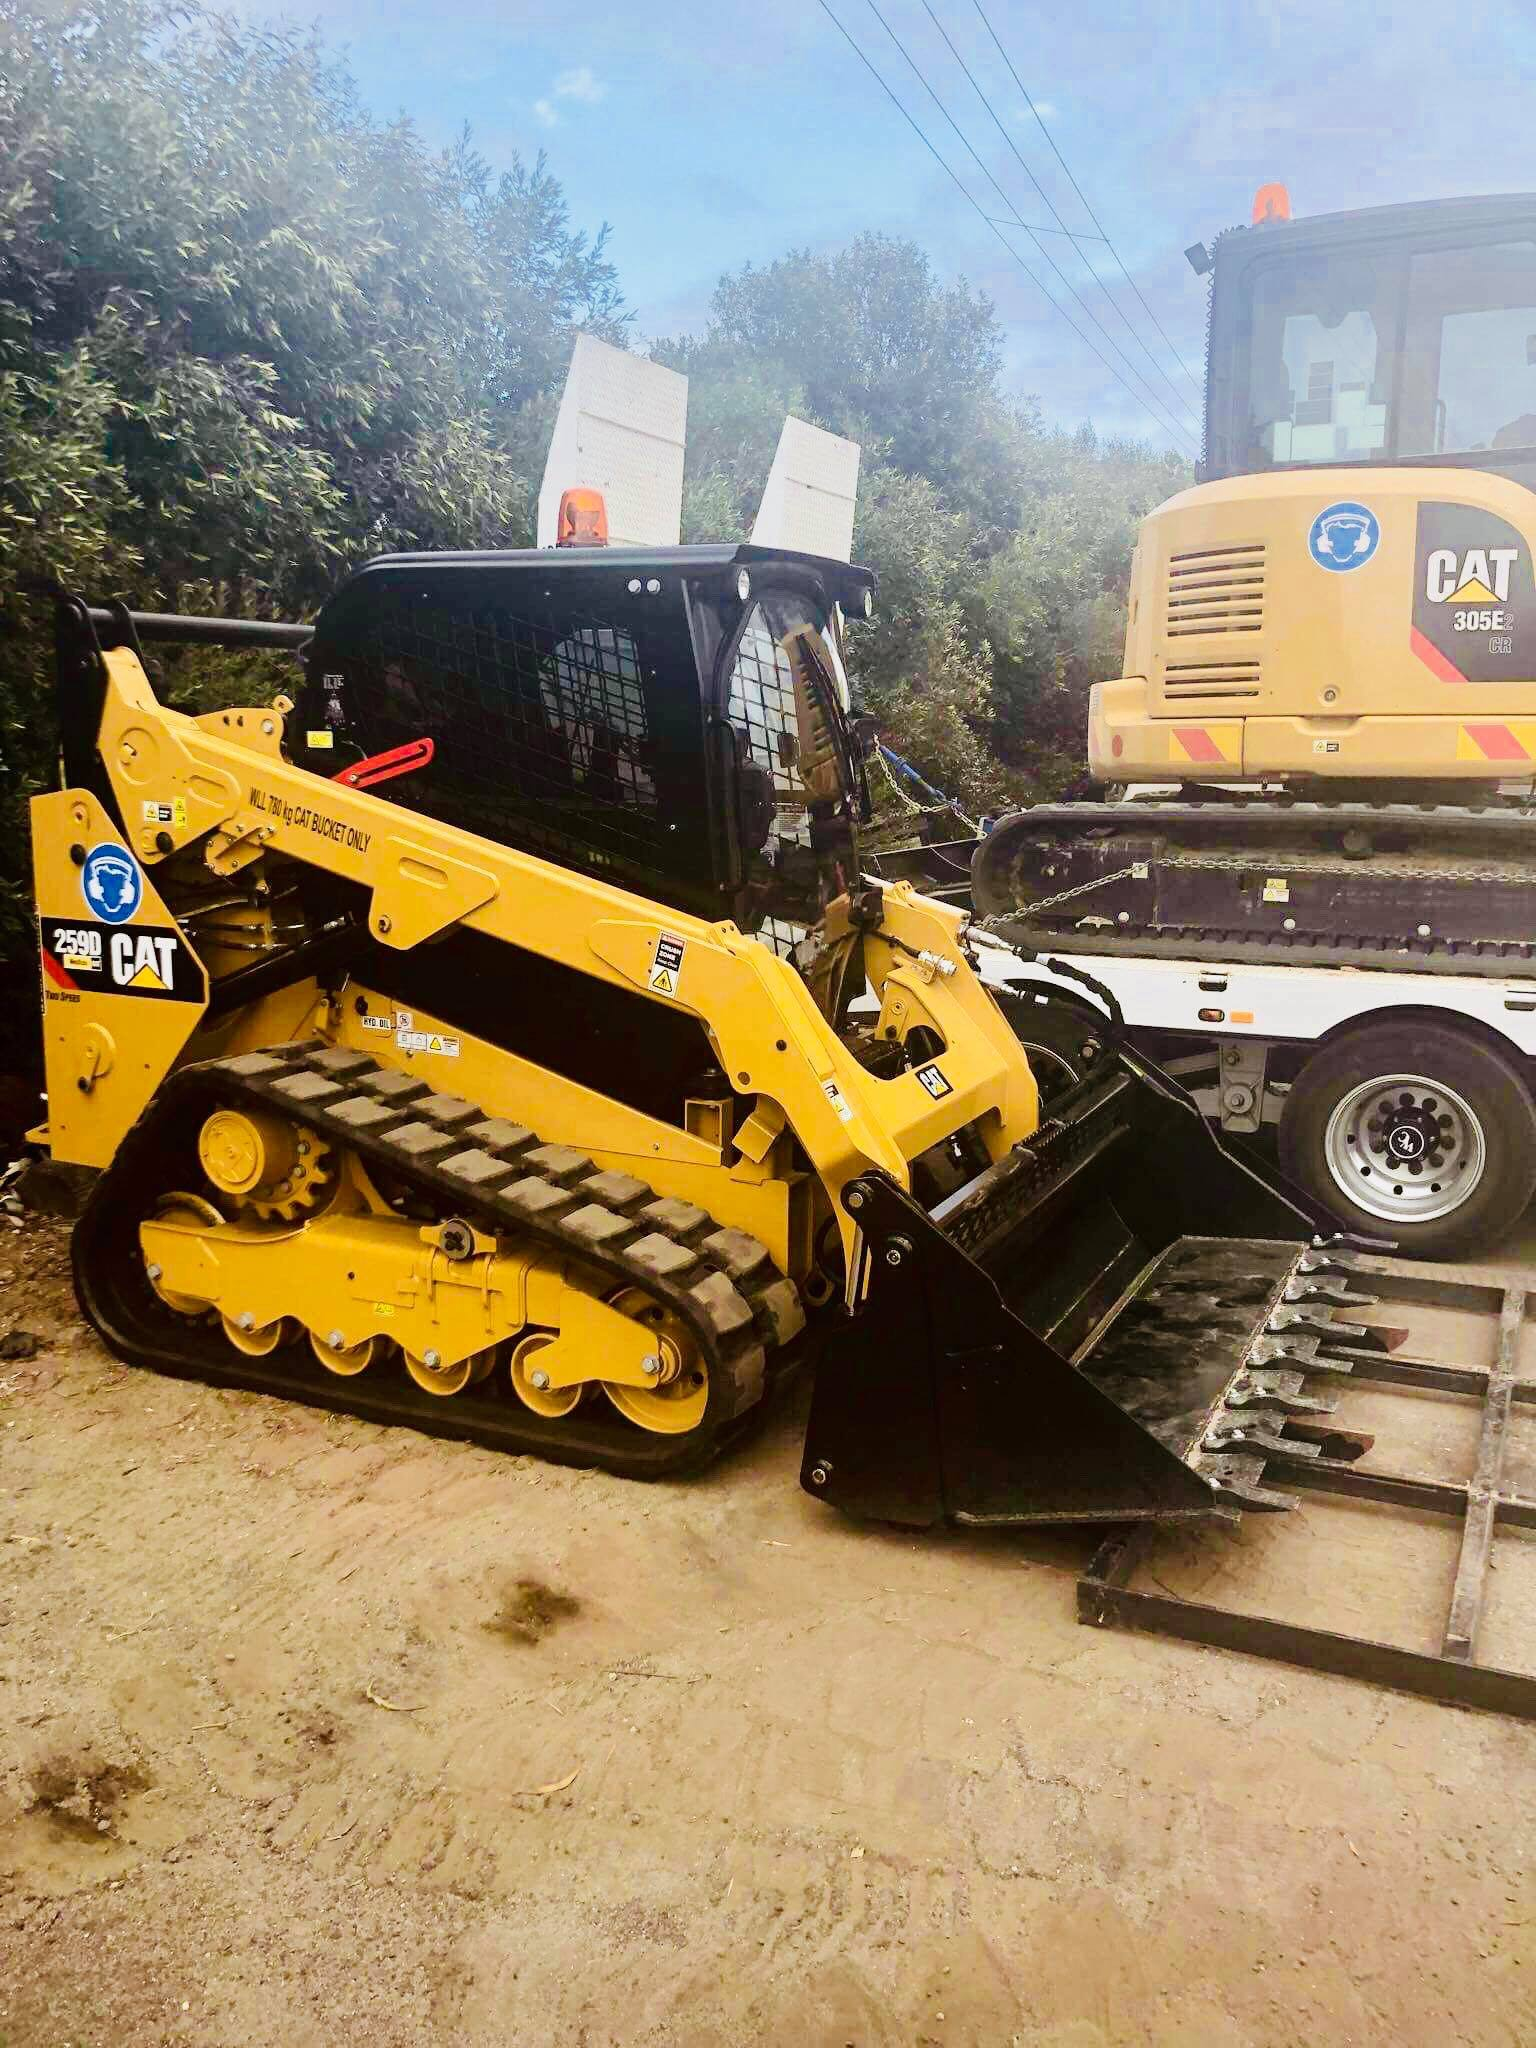 Large Bobcat & Skid Steer Loader for hire - DJK Excavations PTY LTD